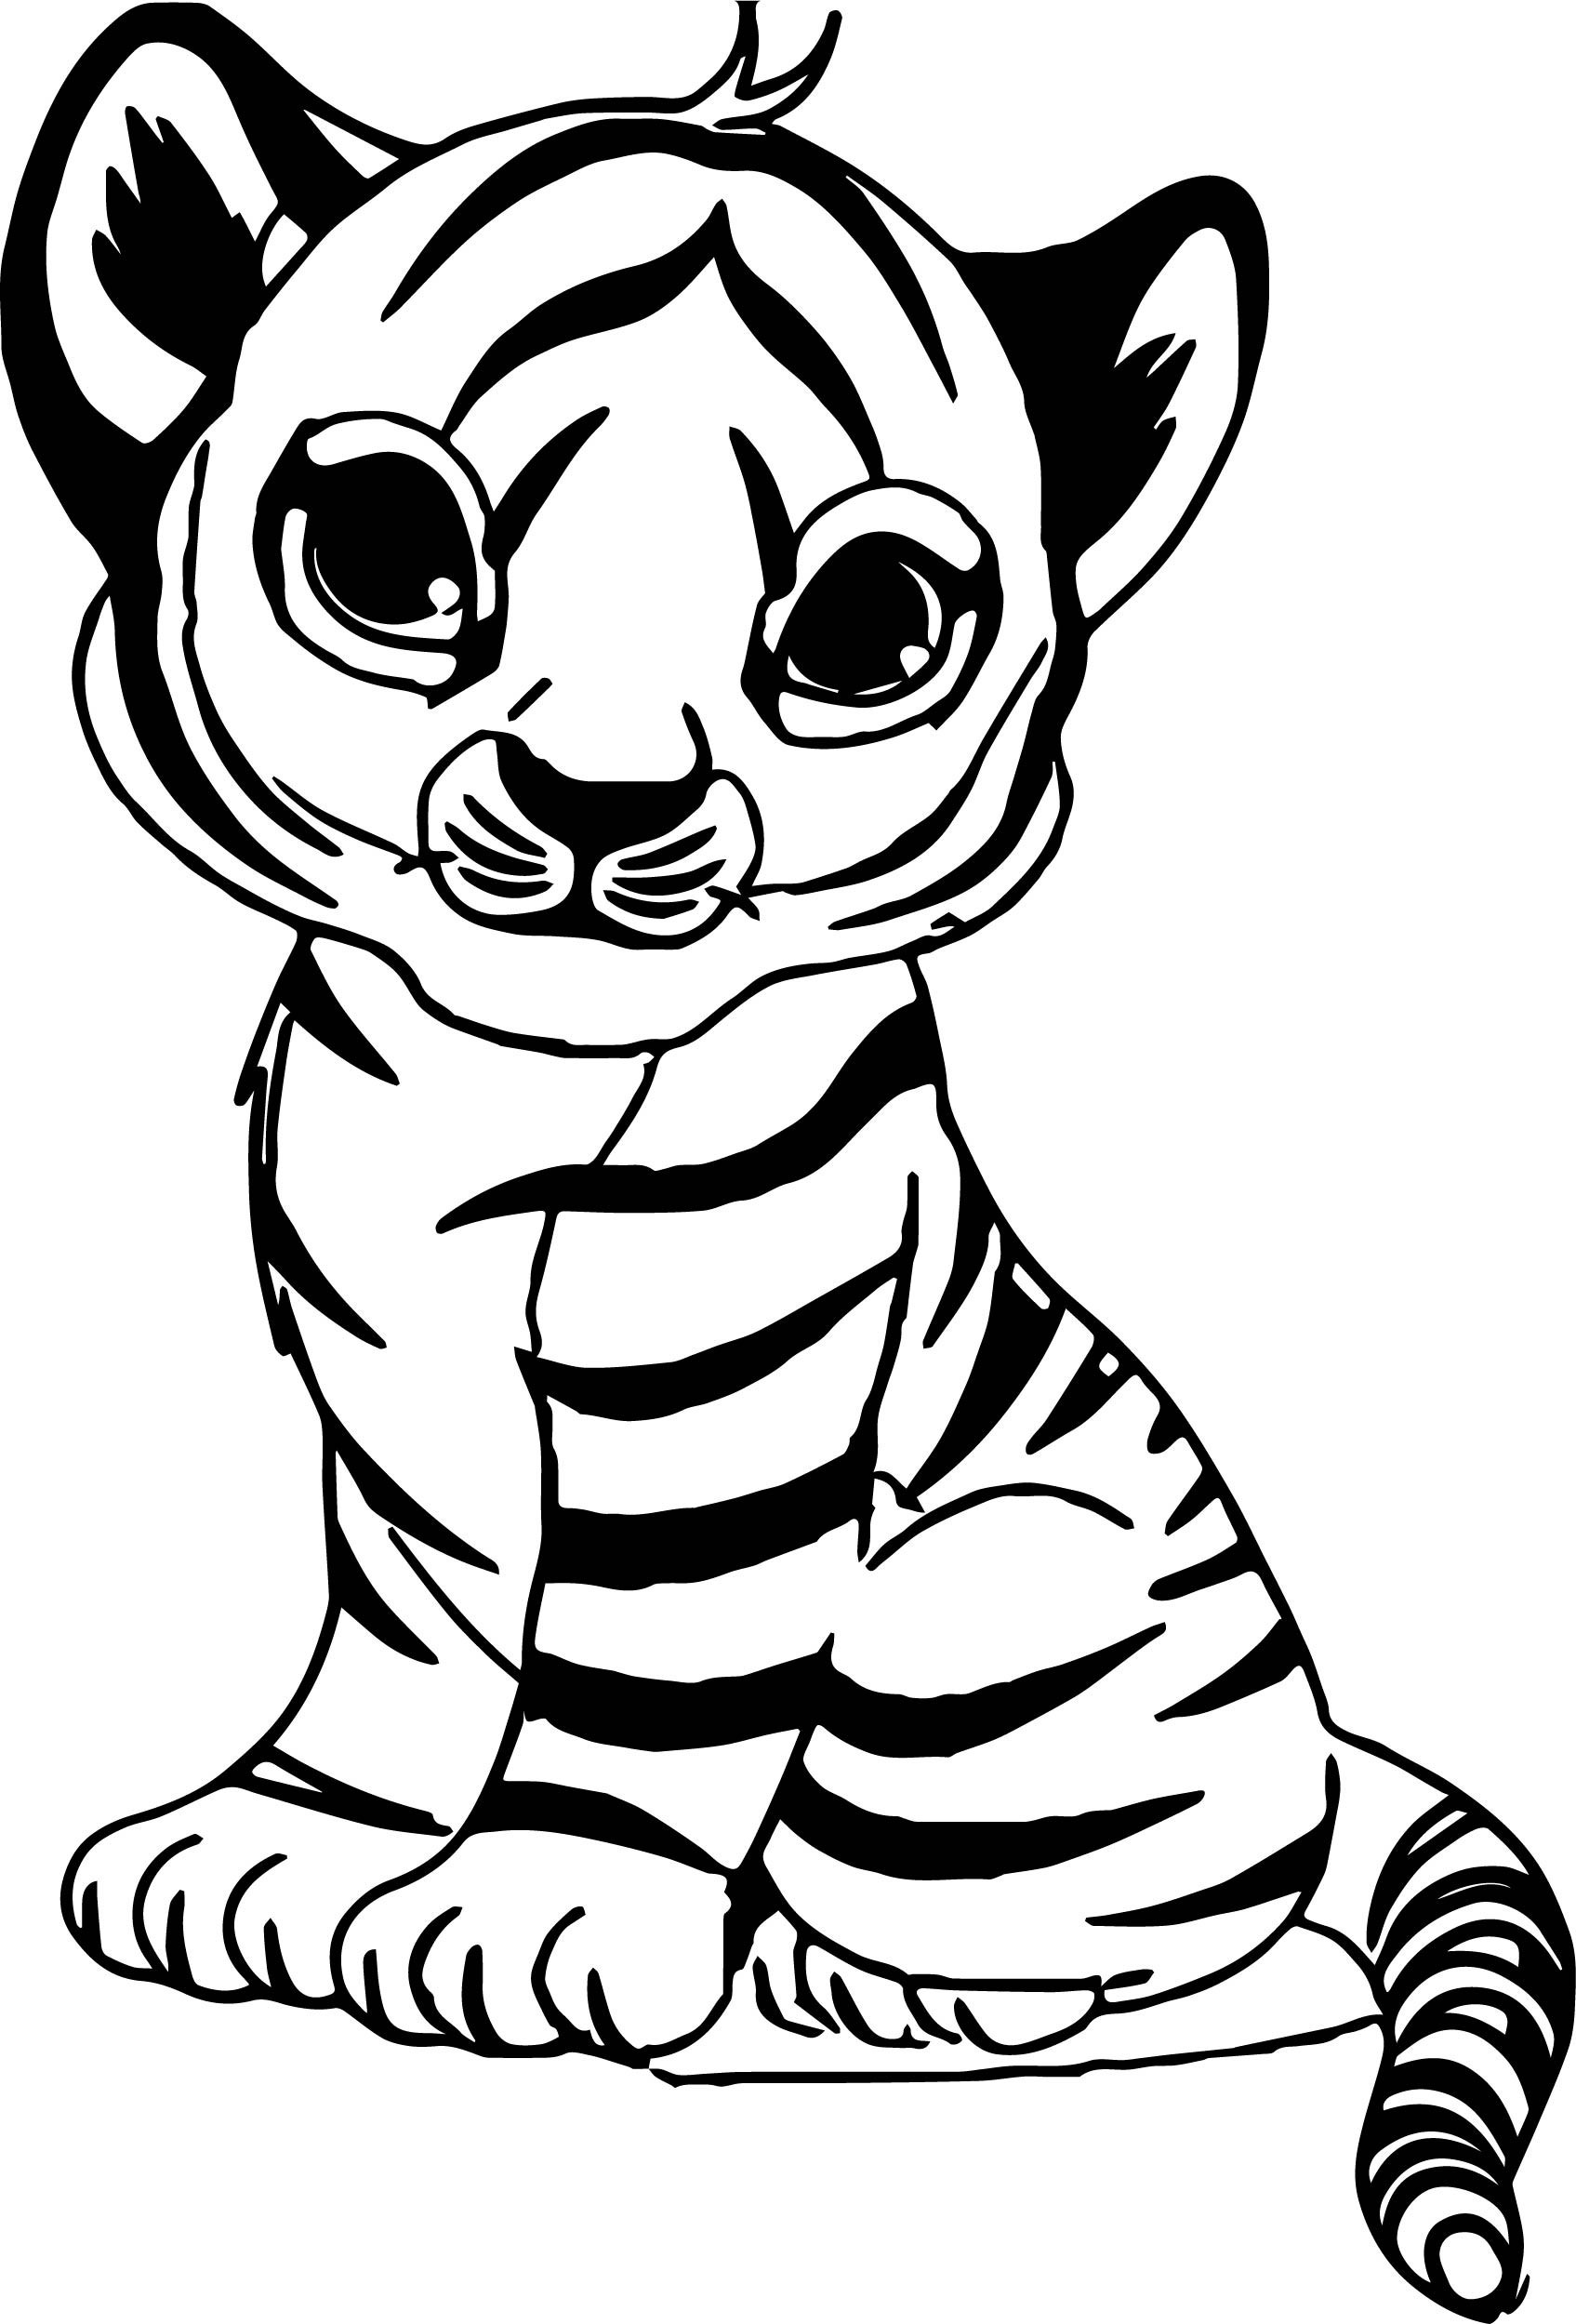 Baby Tiger Coloring Pages  Black White Coloring Pages at GetColorings